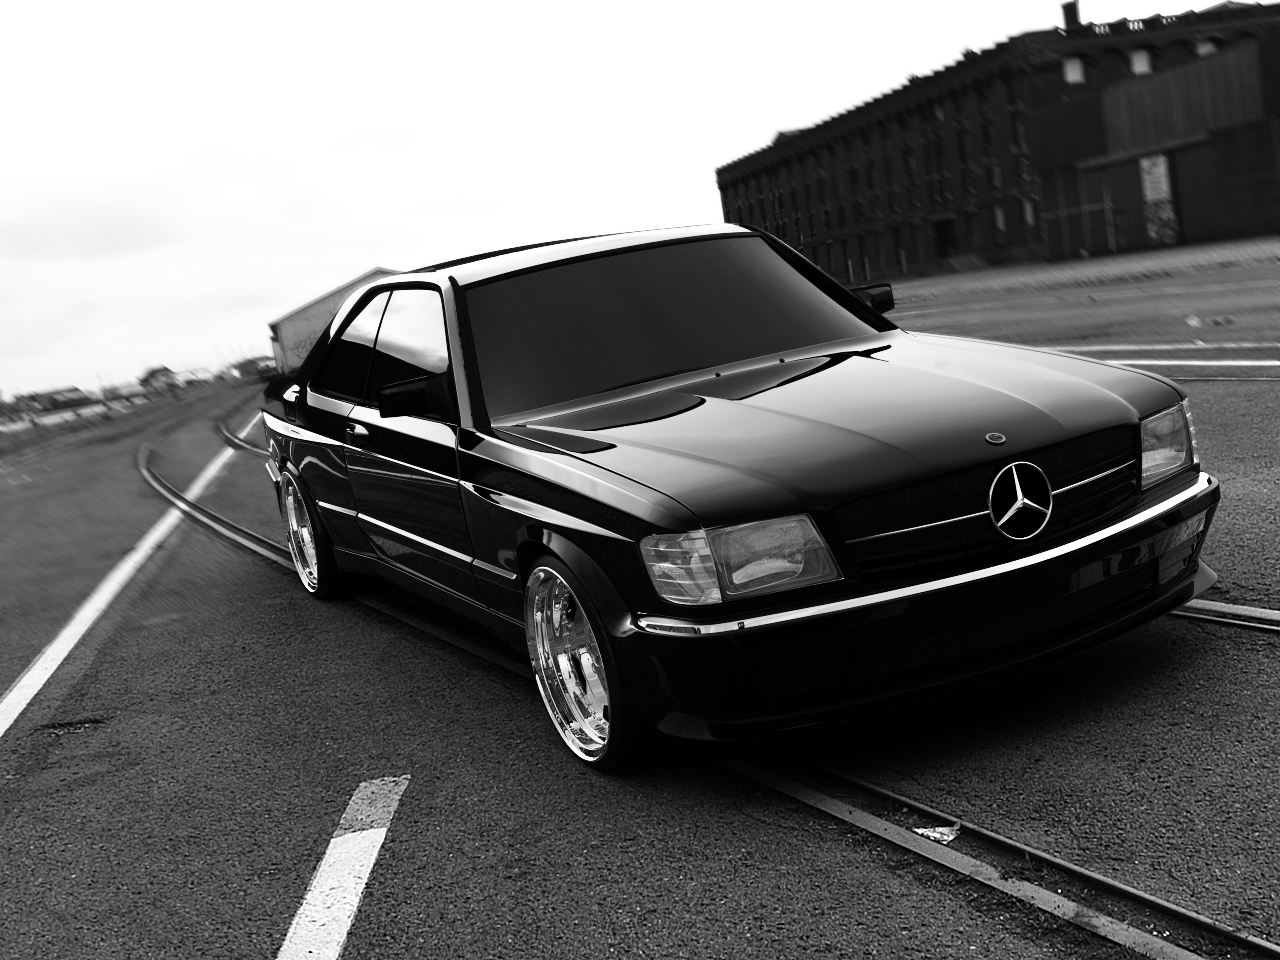 mercedes 560 sec amg wallpapers mercedes 560 sec amg stock photos. Black Bedroom Furniture Sets. Home Design Ideas